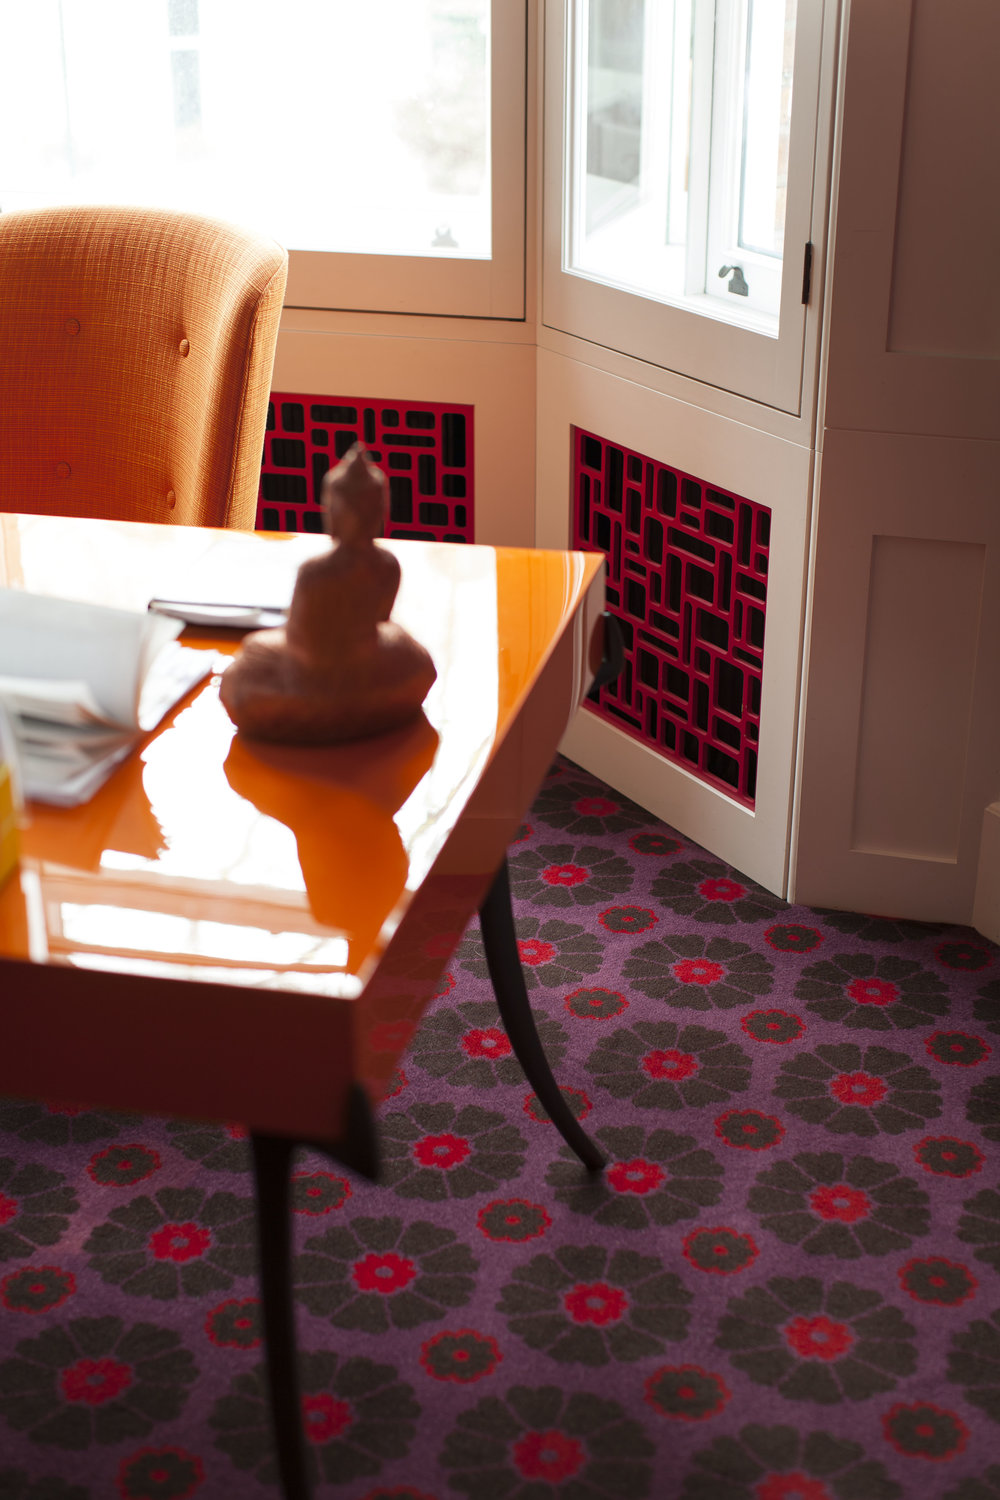 STUDY Featuring Ashley's Lacquer Sabre Desk and his Daisy Carpet produced with Alternative Flooring